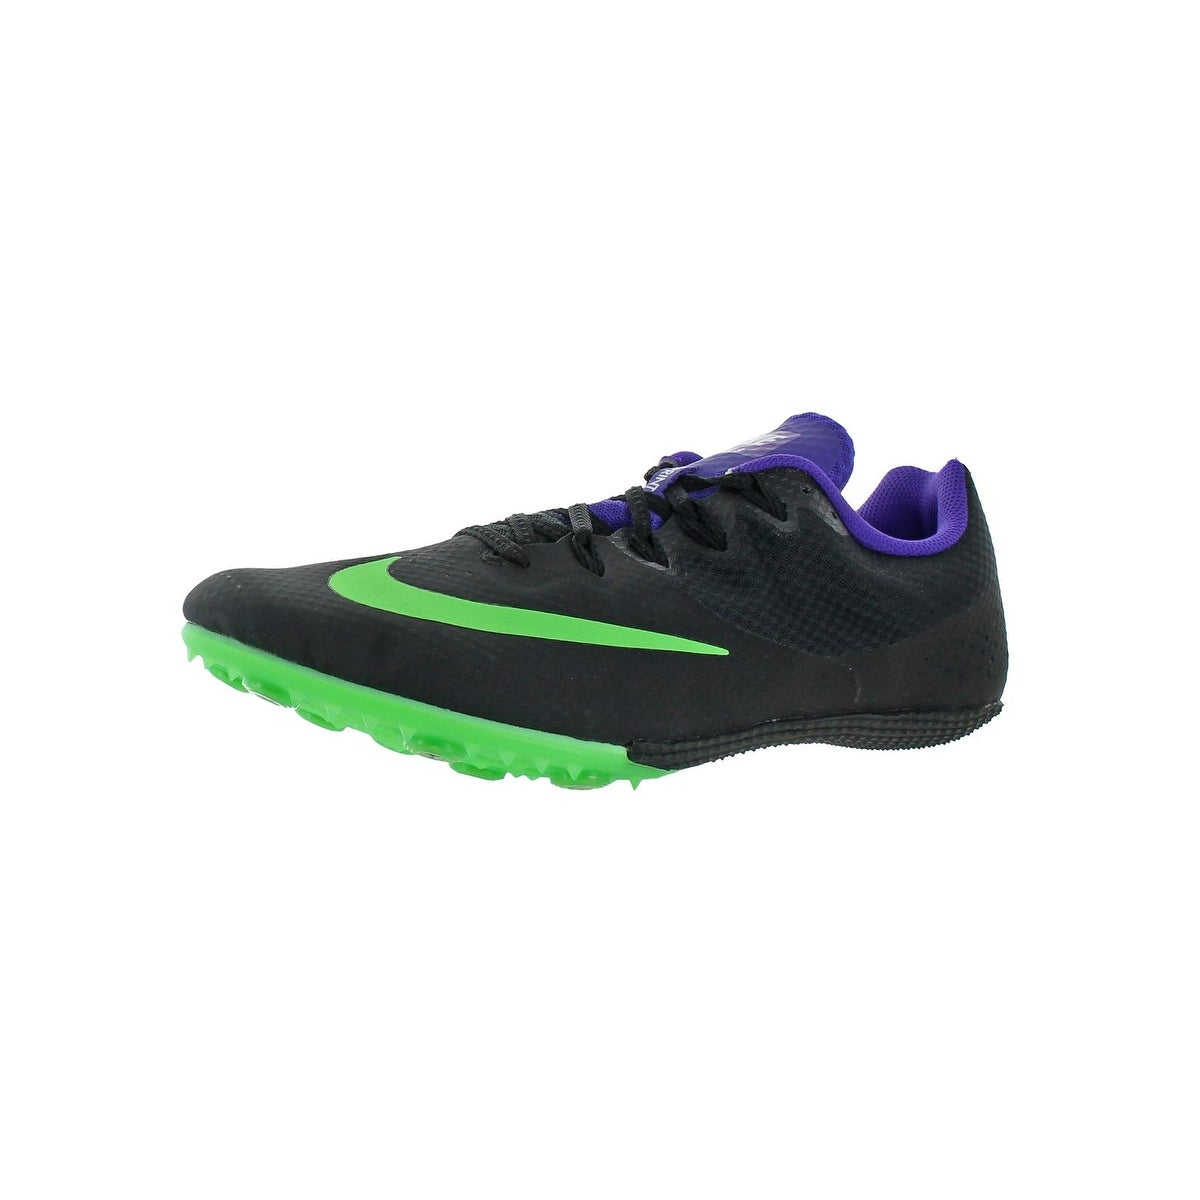 sale retailer fedea df345 Shop Nike Mens Zoom Rival S 8 Running Shoes Track   Field Spikes - 13  medium (d) - Free Shipping On Orders Over  45 - Overstock - 22581774